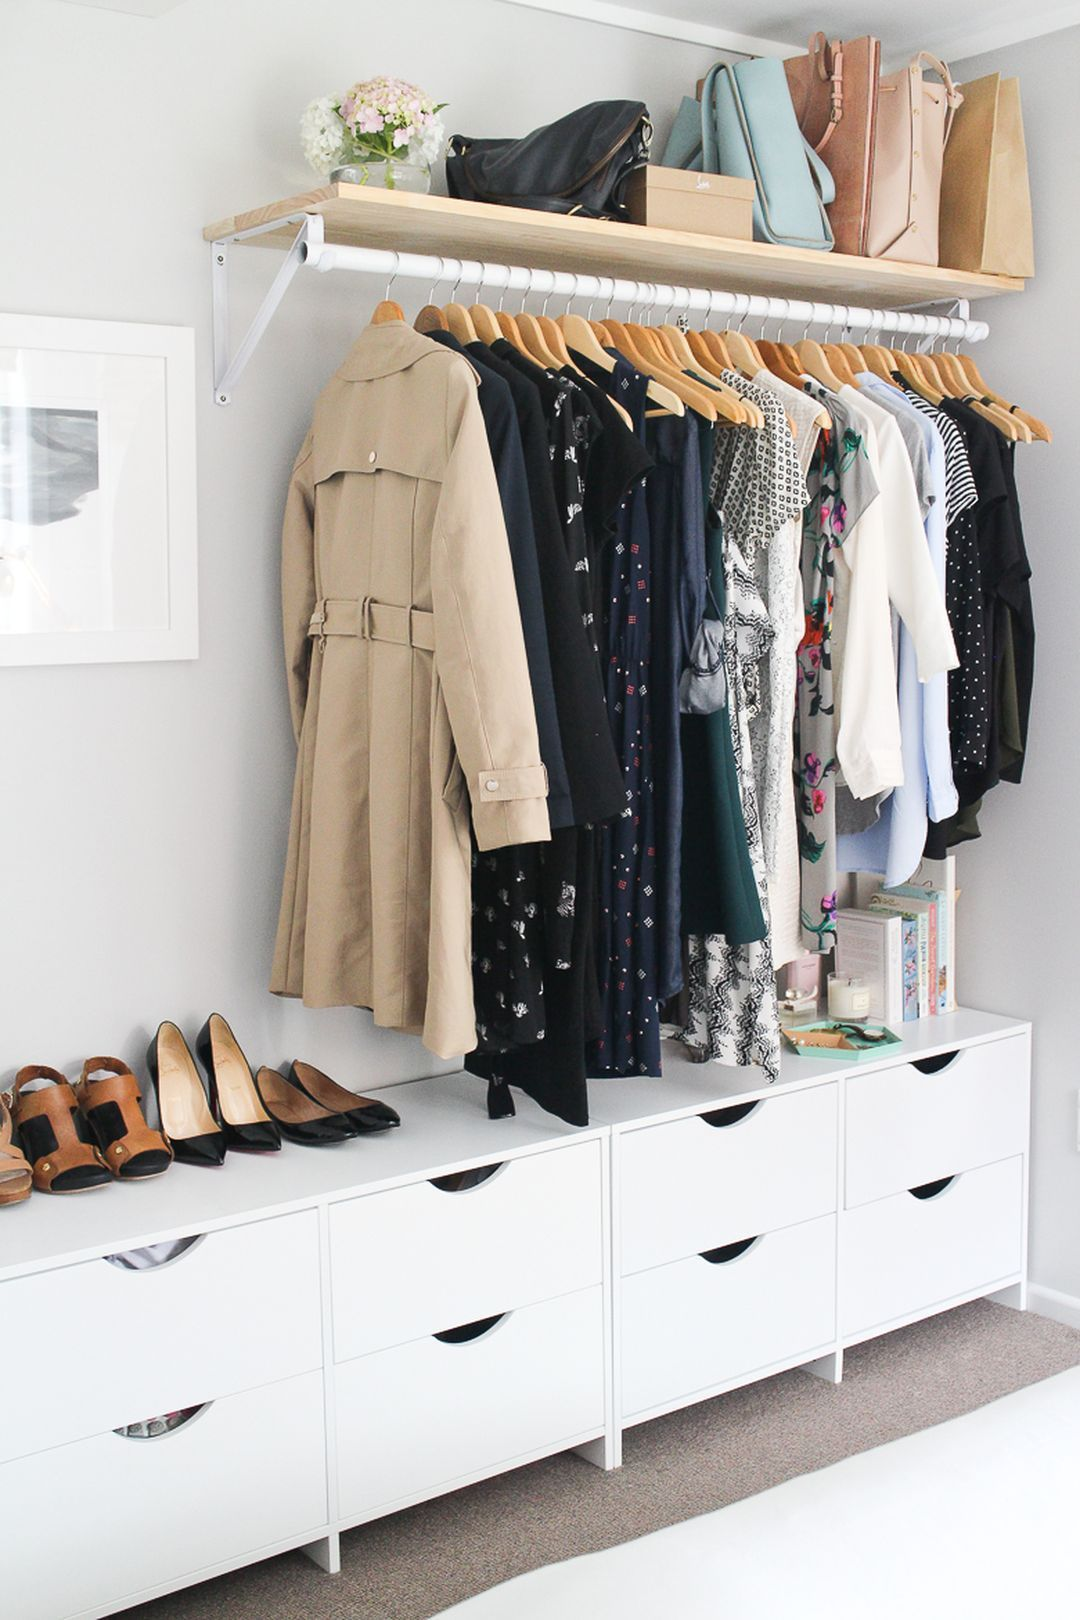 Easy Diy Bedroom Storage For Small Space 13 No Closet Solutions